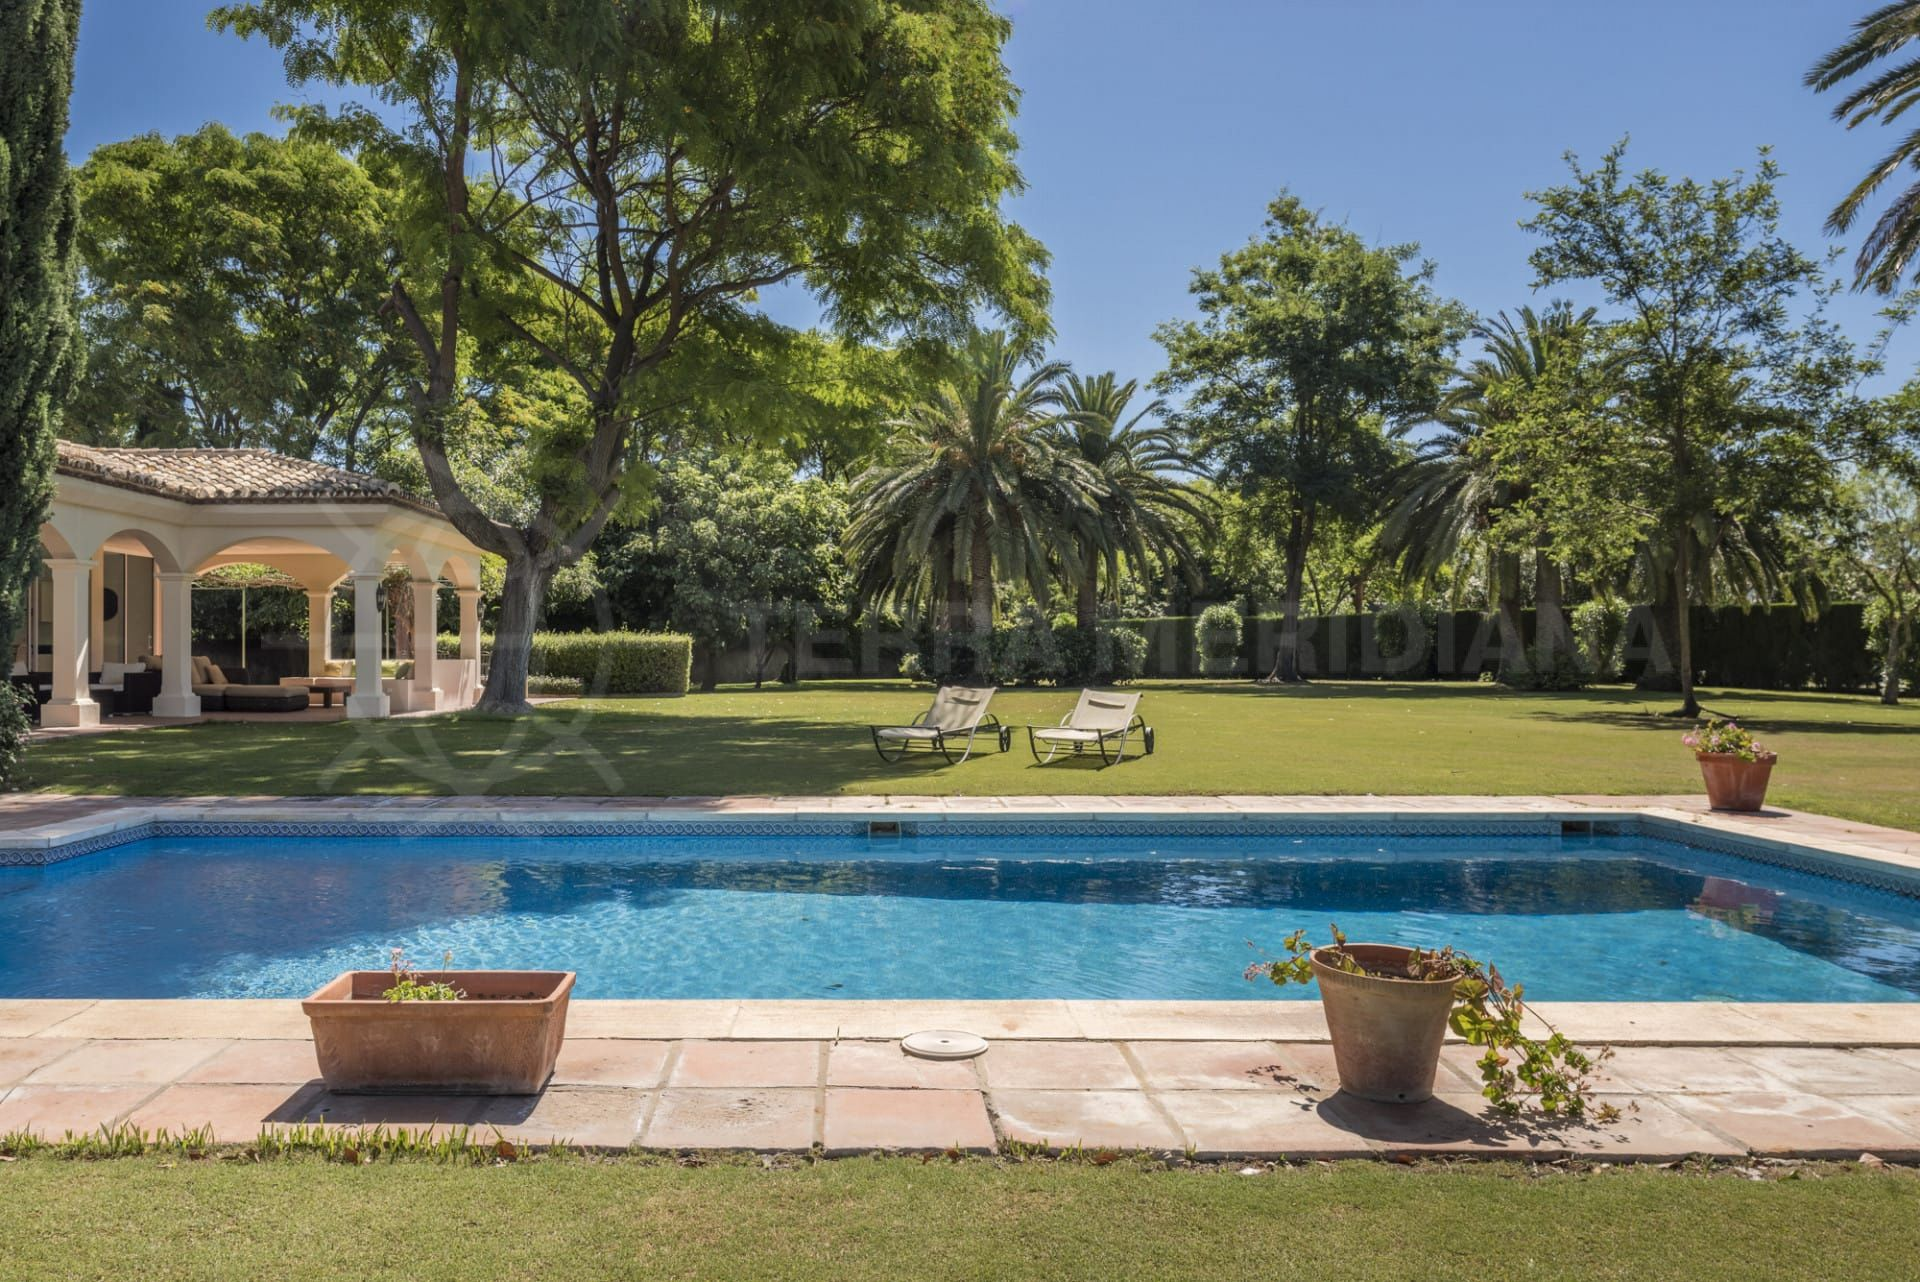 Kings and Queens guide | Living in Kings and Queens, Sotogrande